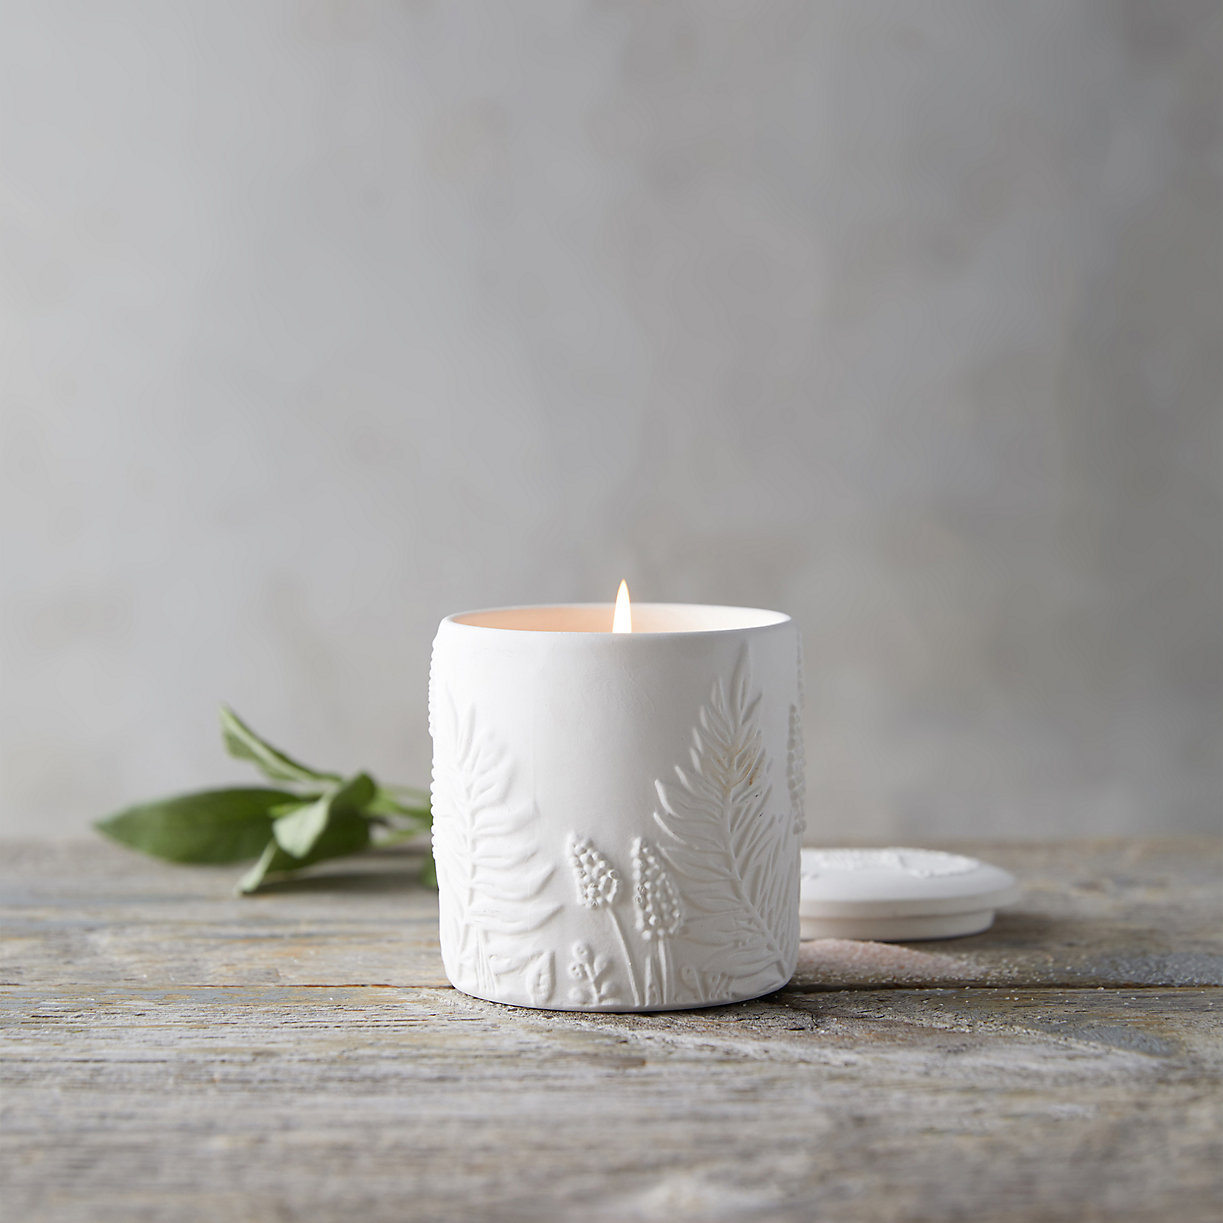 Greenhouse Candle, $34